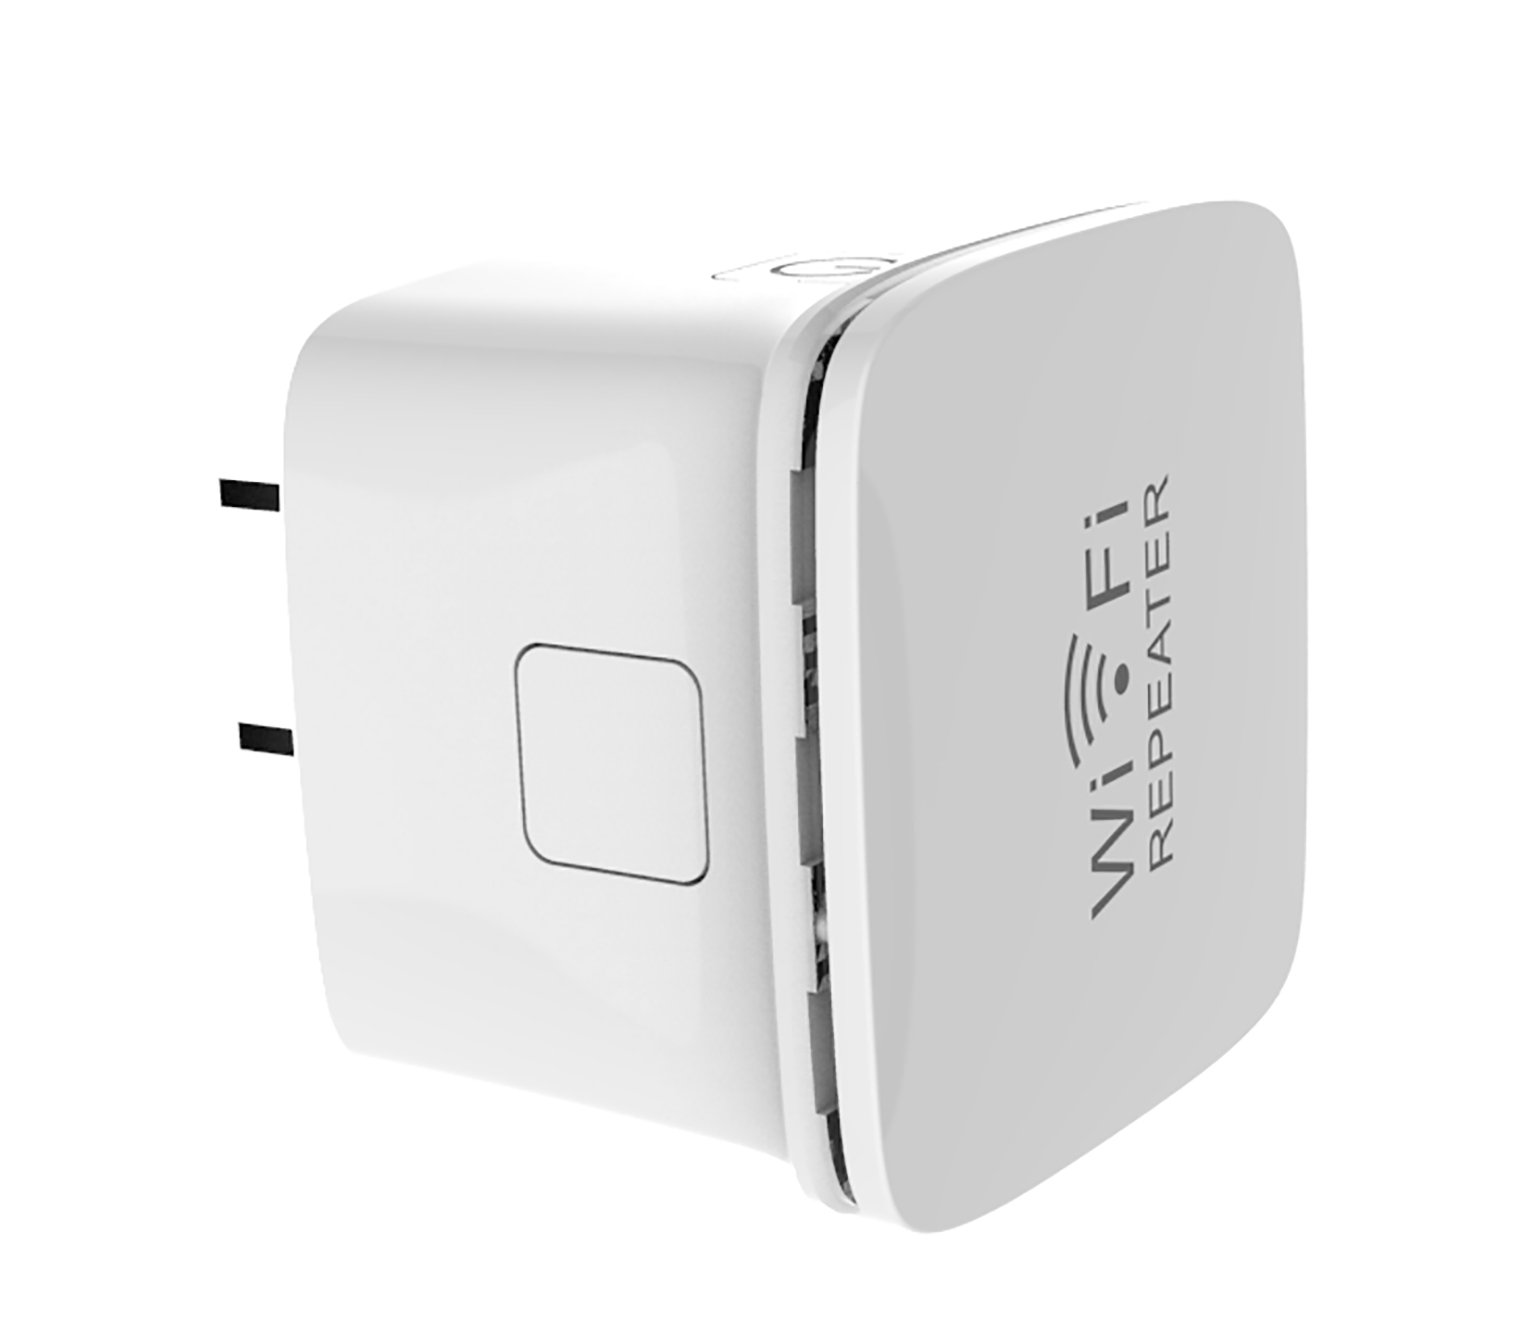 World Smallest Mini N300 WiFi Range Extender,300Mbps Travel WiFi Repeater  with Ethernet Port,Travel WiFi Router,WiFi Signal Booster for Home